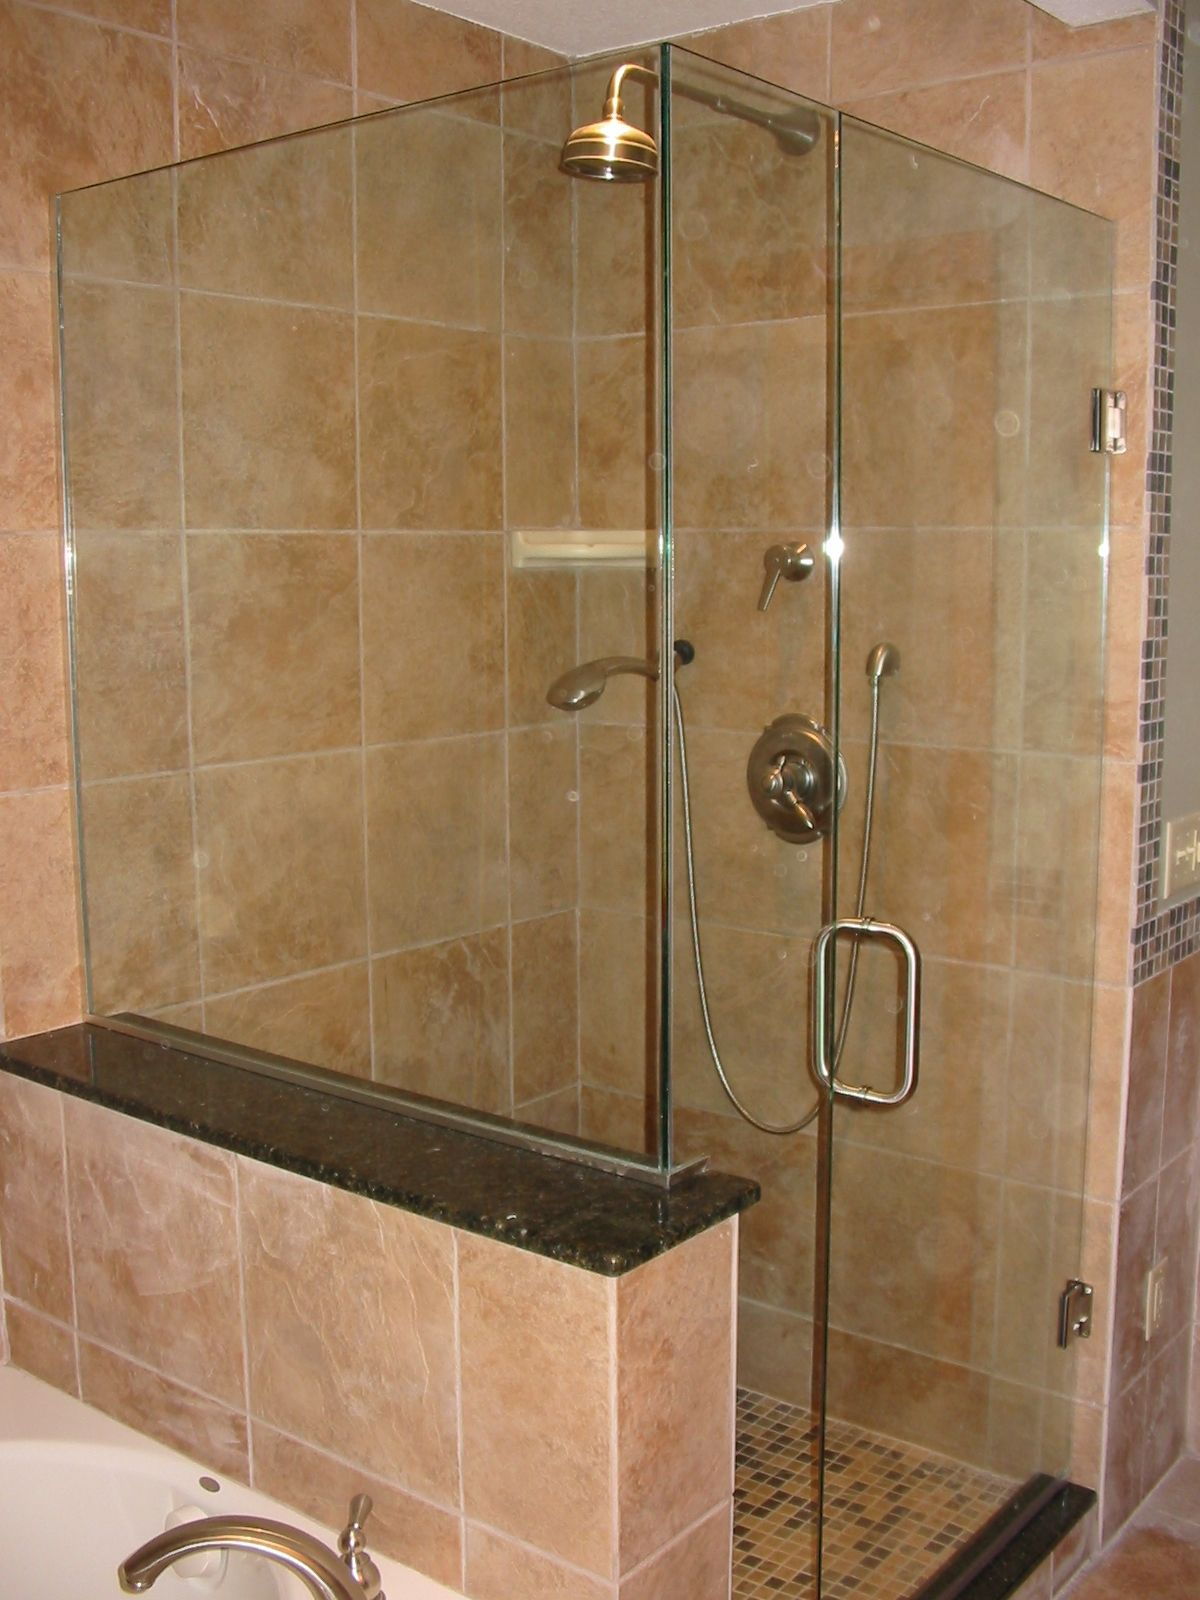 Bathroom shower doors frameless - Glass Shower Enclosure Ideas For Small Bathroom Frameless Shower Enclosures